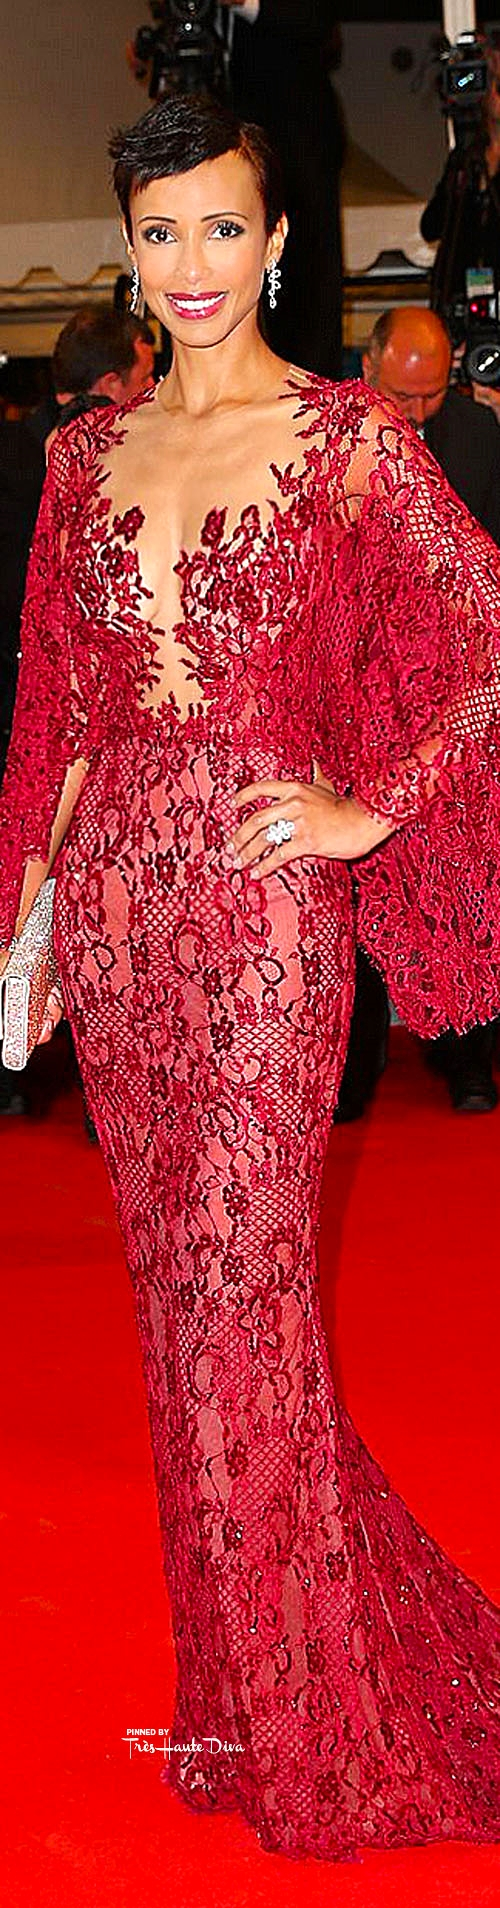 Sonia Rolland in Zuhair Murad                      DR